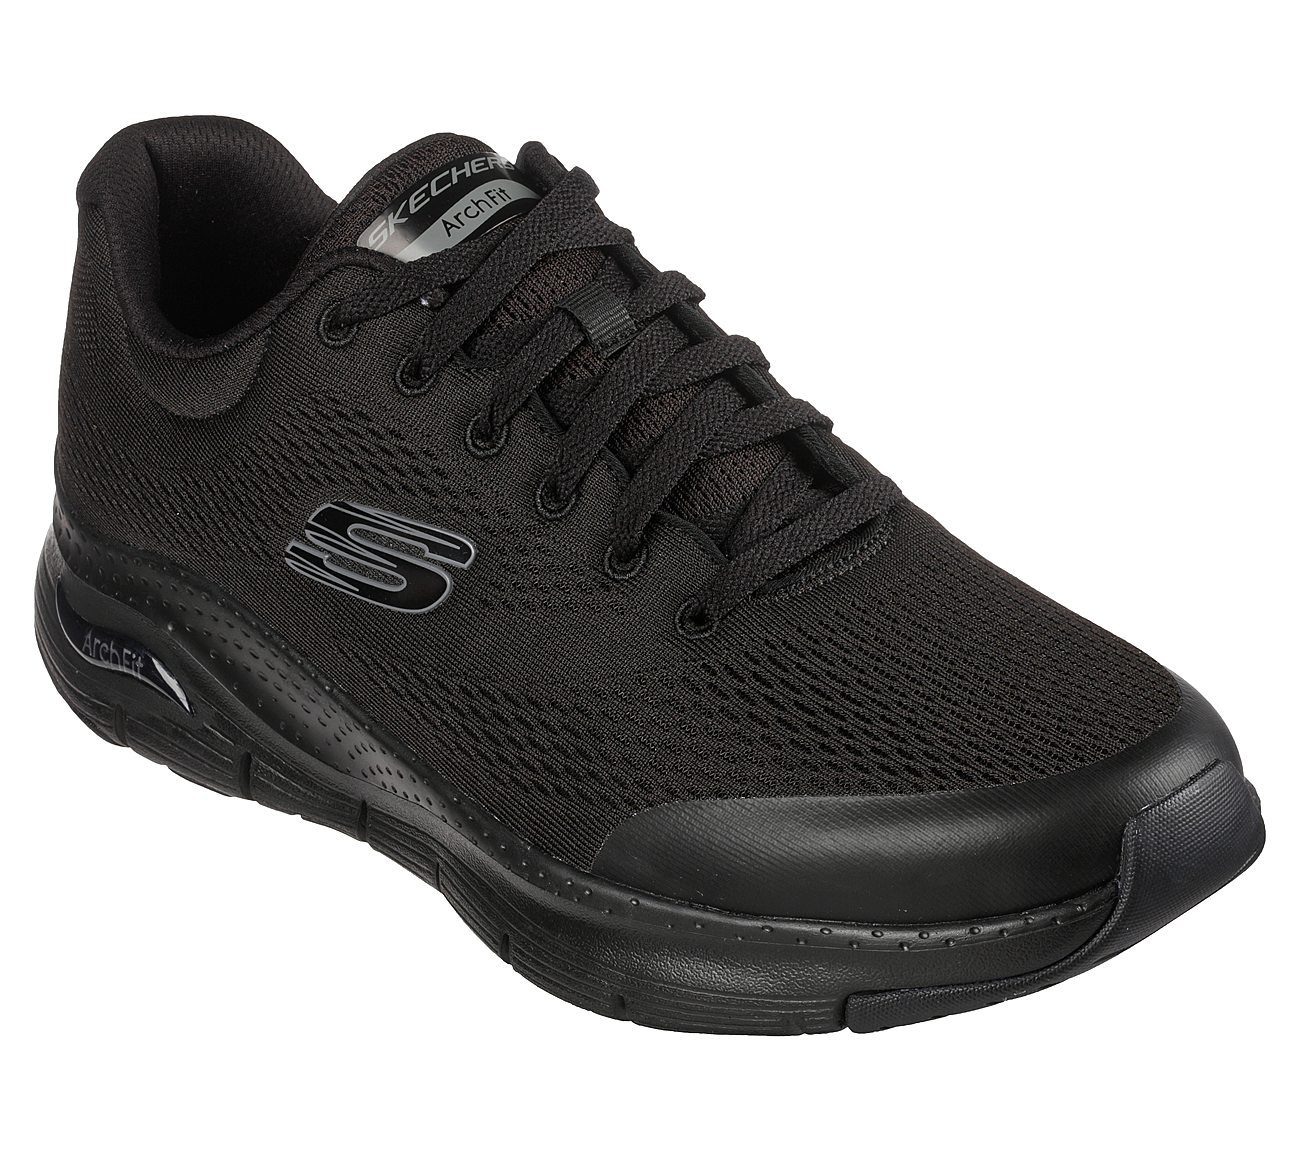 Skechers Arch Fit Skechers Arch Fit Shoes